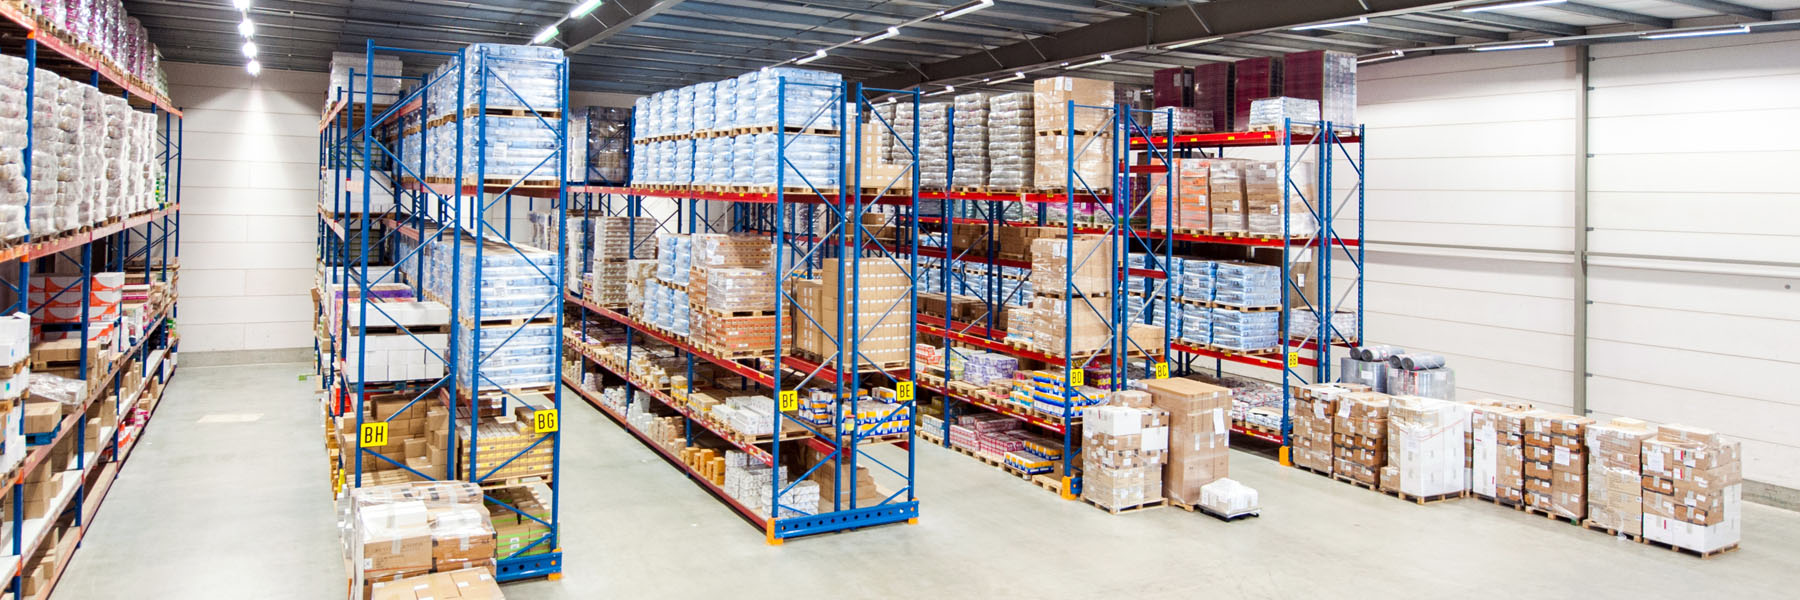 Warehouse MDI logistics